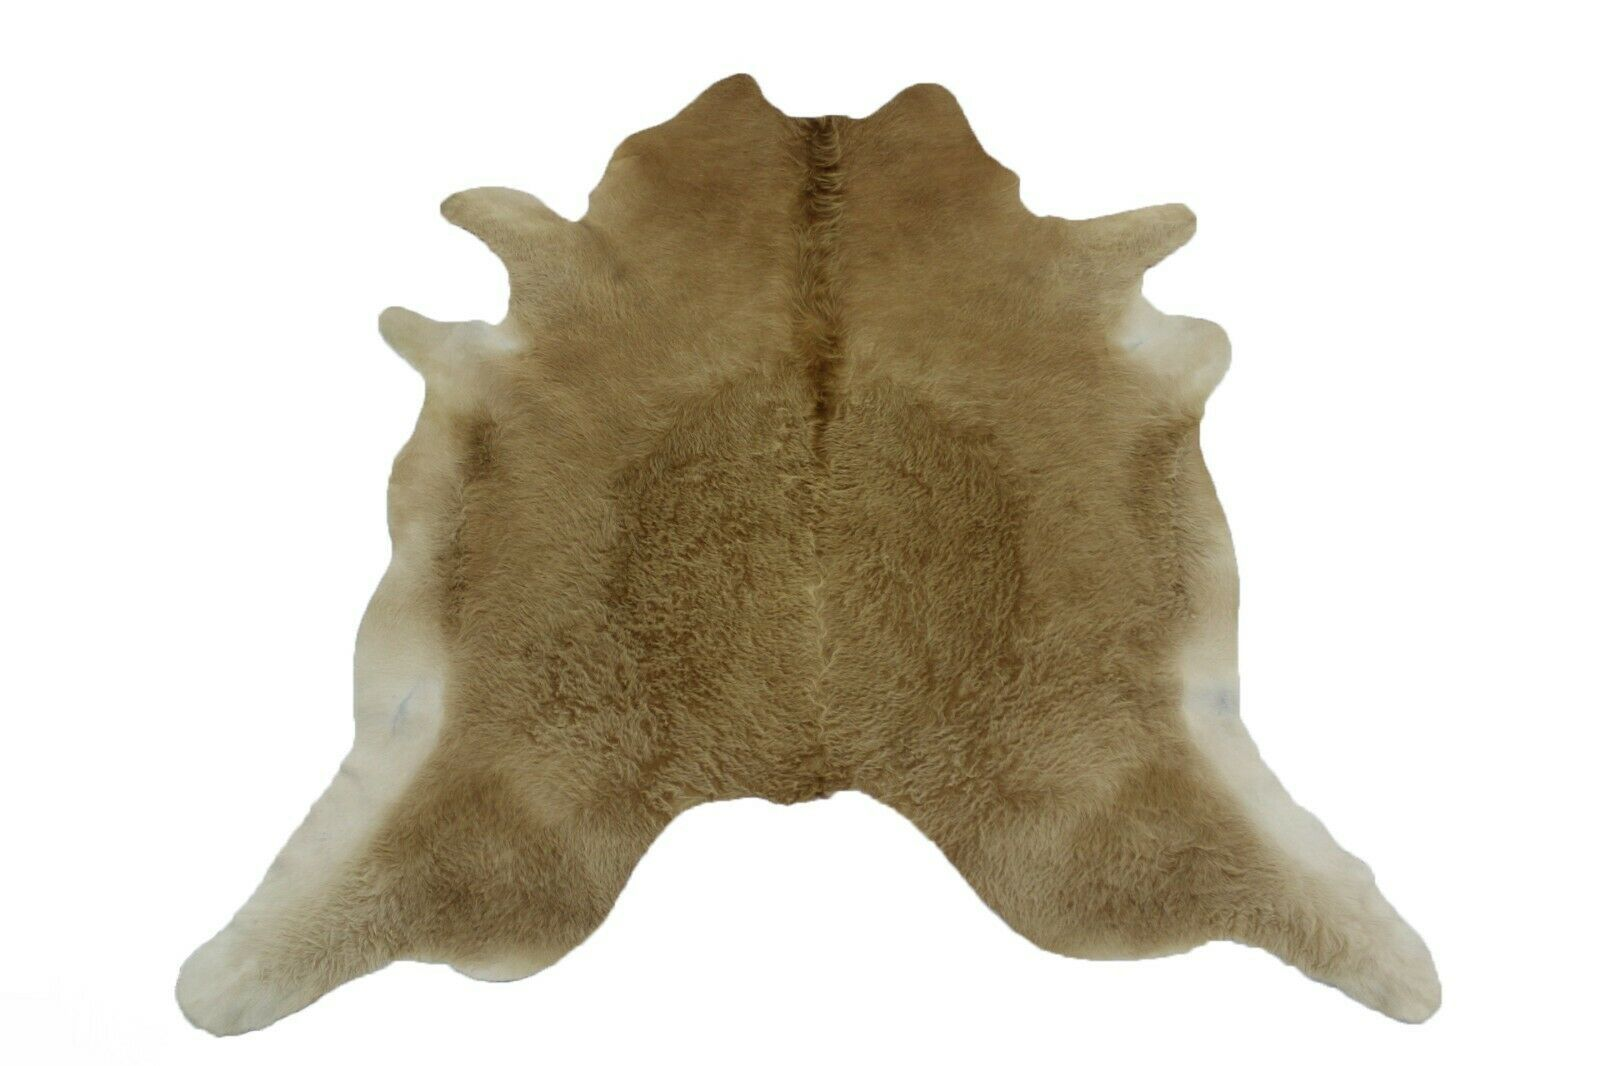 Details About Cowhide Rug Light Brown Large Cow Skin Area Rug 6x7 Ft Hair On Leather Rug With Images Cow Hide Rug Leather Rug Large Cowhide Rug